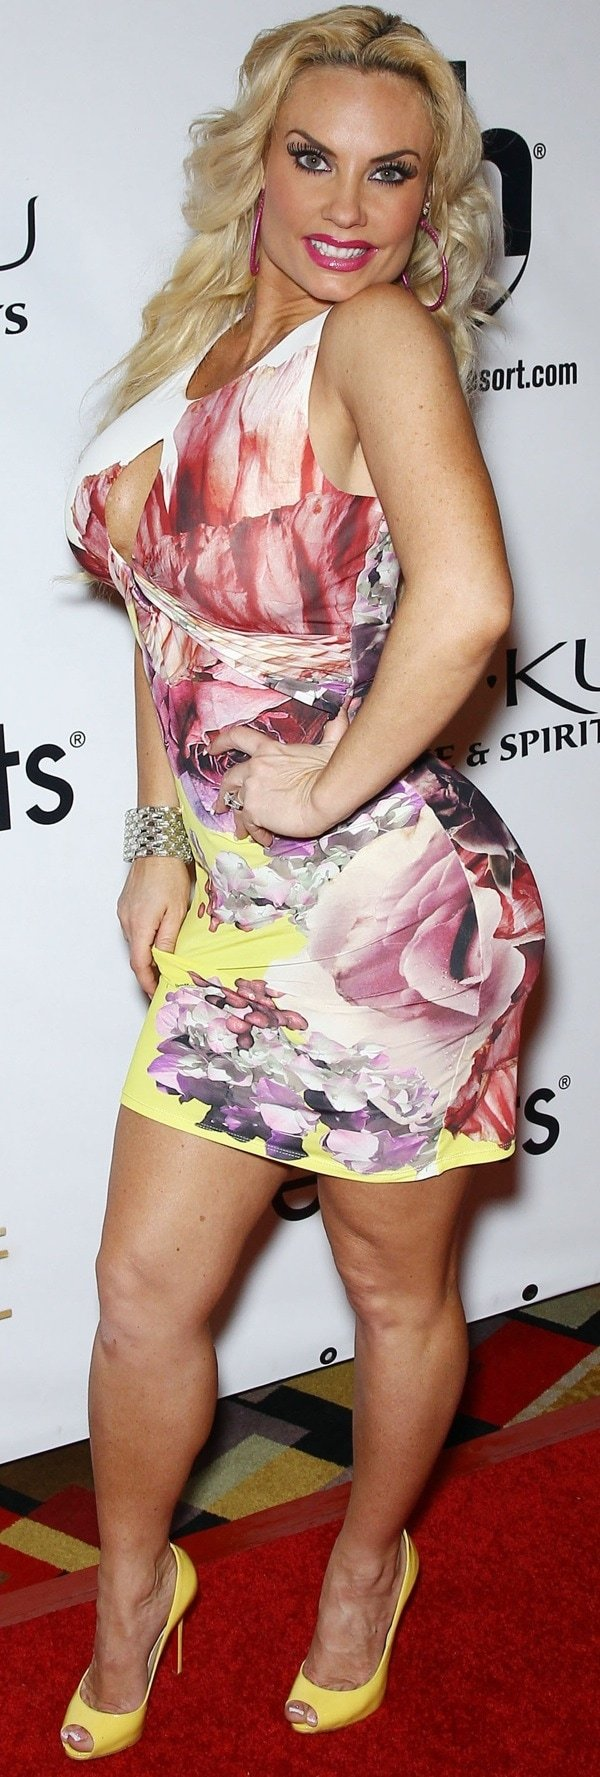 Coco Austin wearing a floral-printed dress in pink, white, and yellow